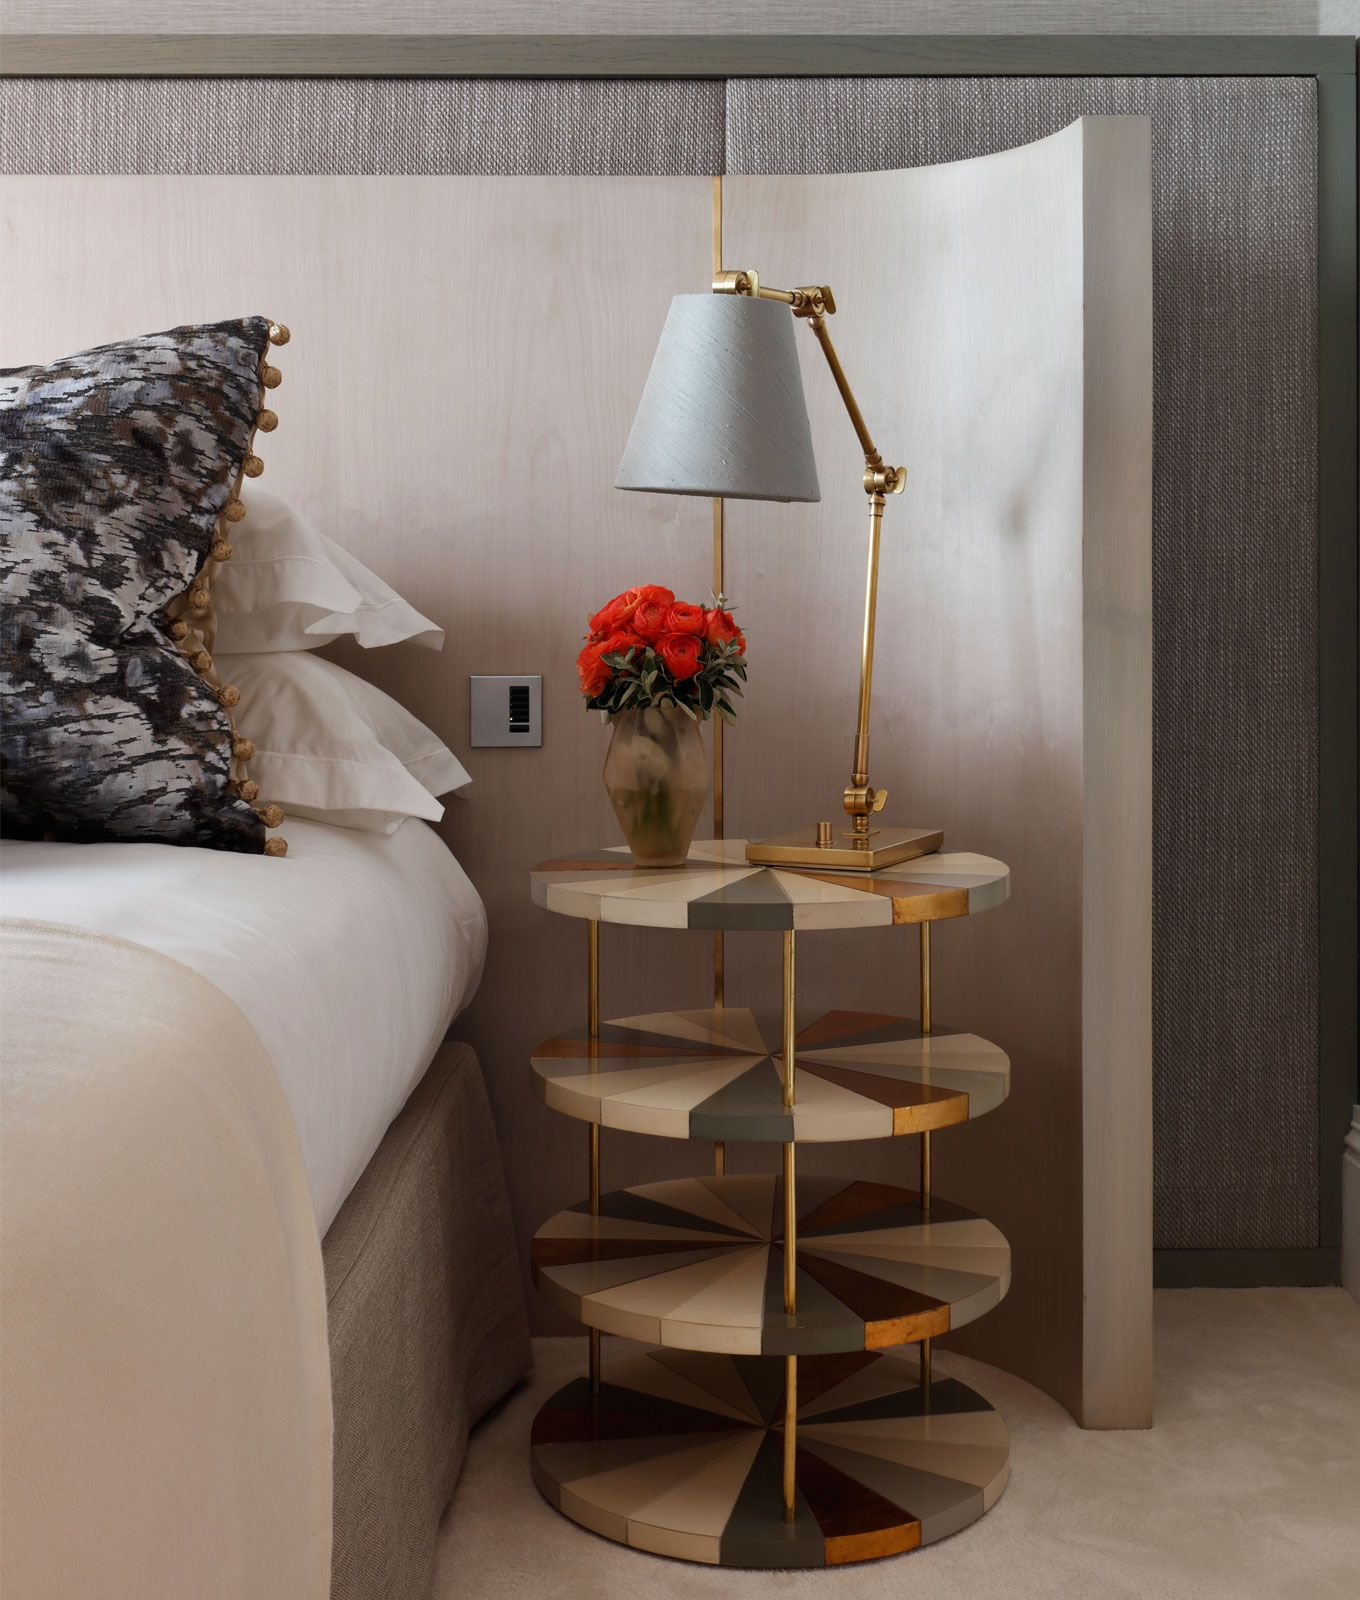 1 Bedroom Apartment Chelsea New York: Bespoke Bedside Table In Modern Bedroom Interior In King's